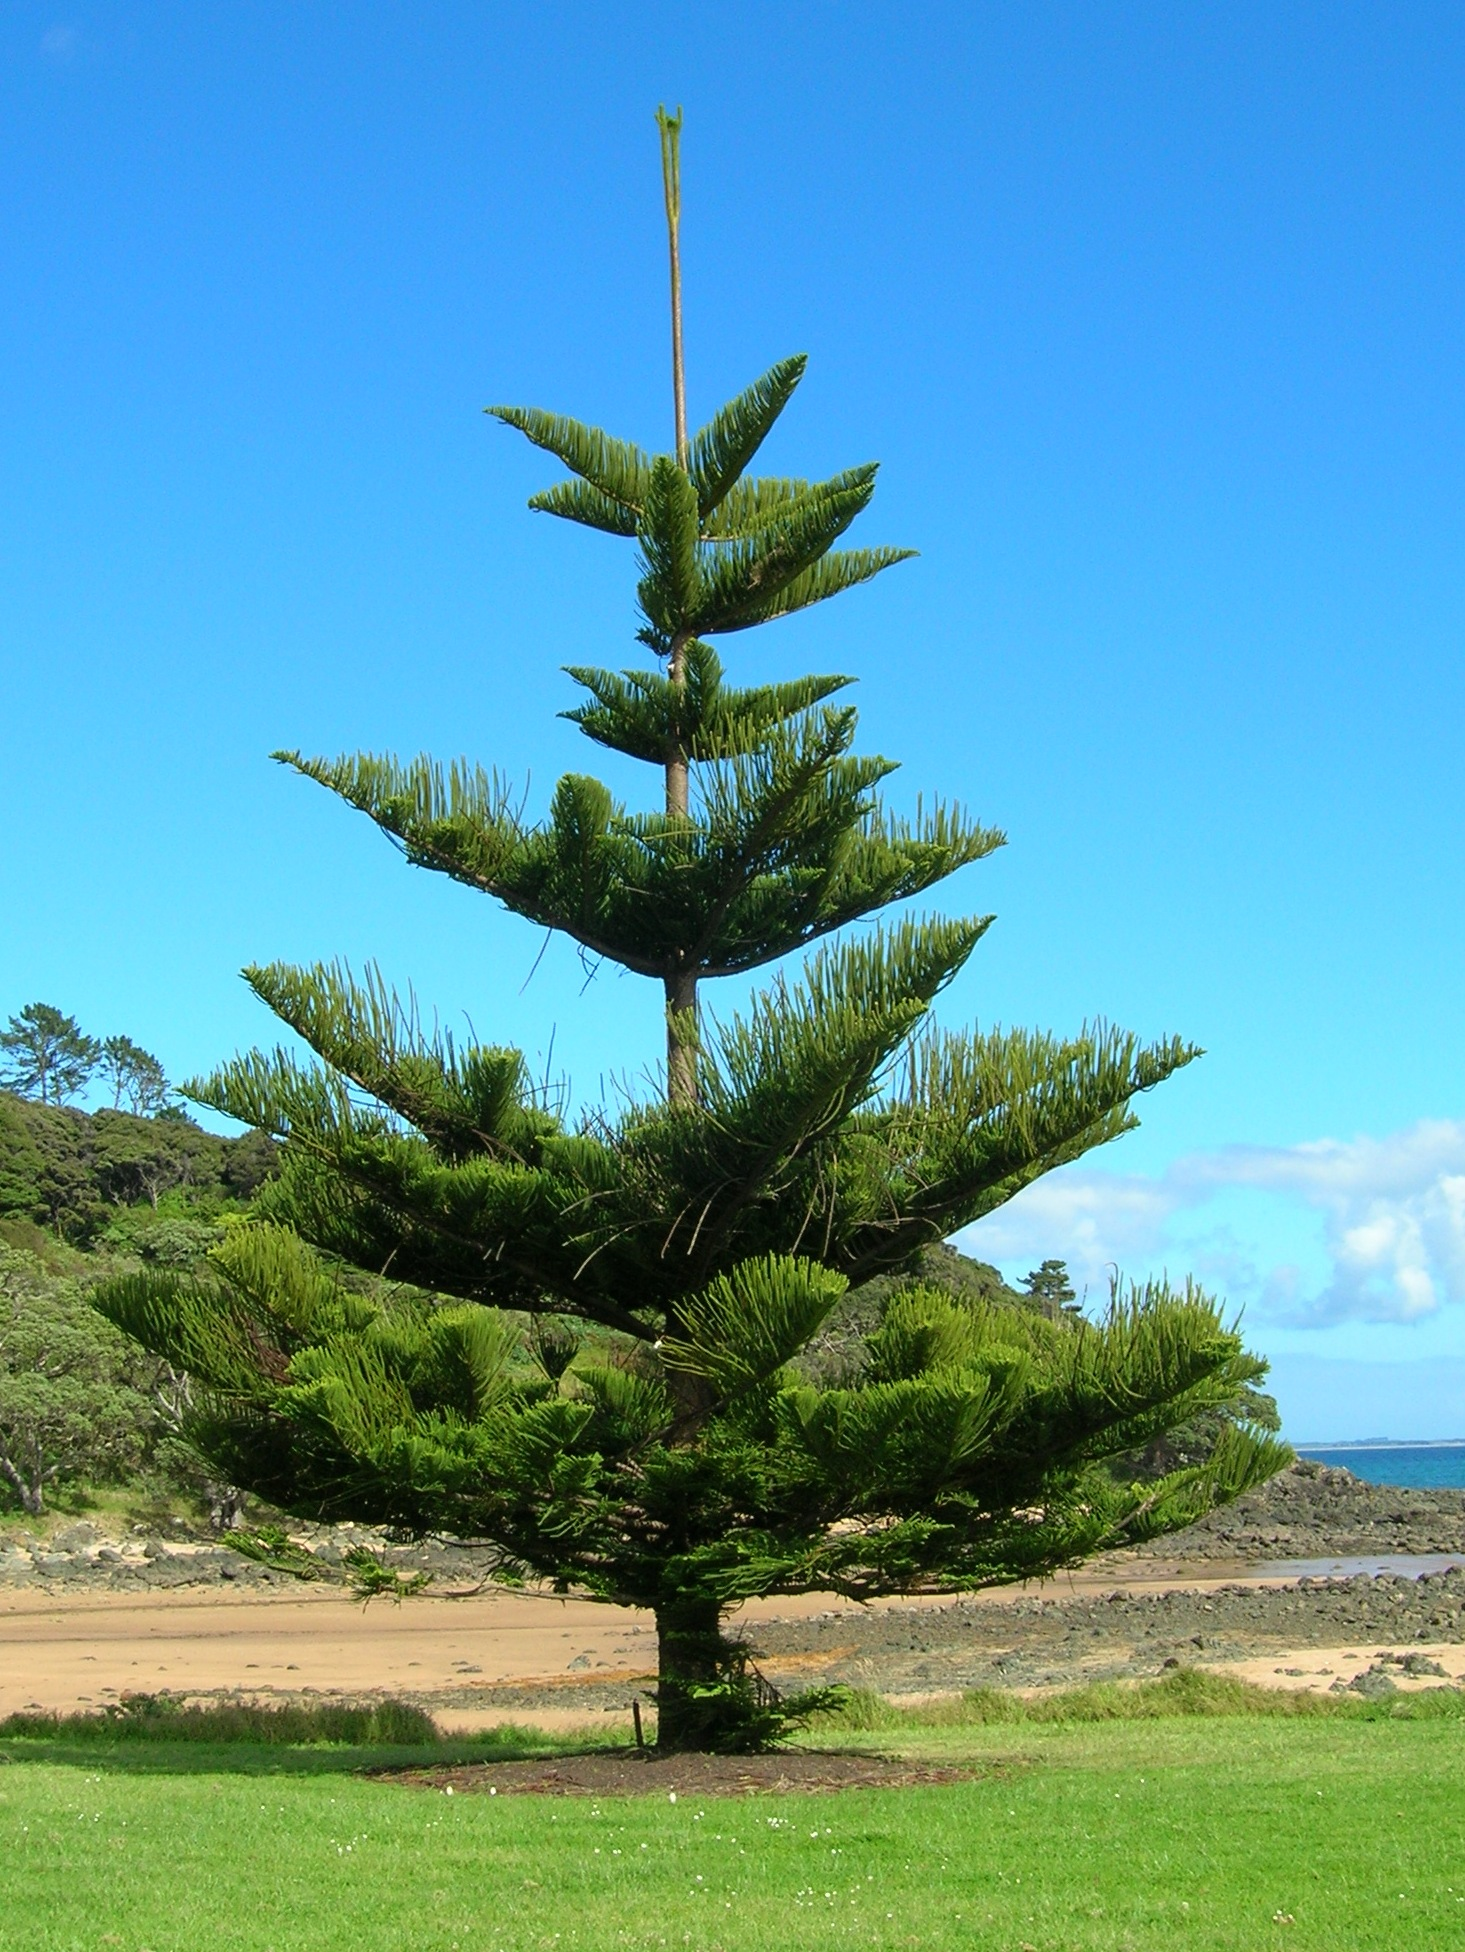 the description of the sky craping norfolk pines at rangitoto